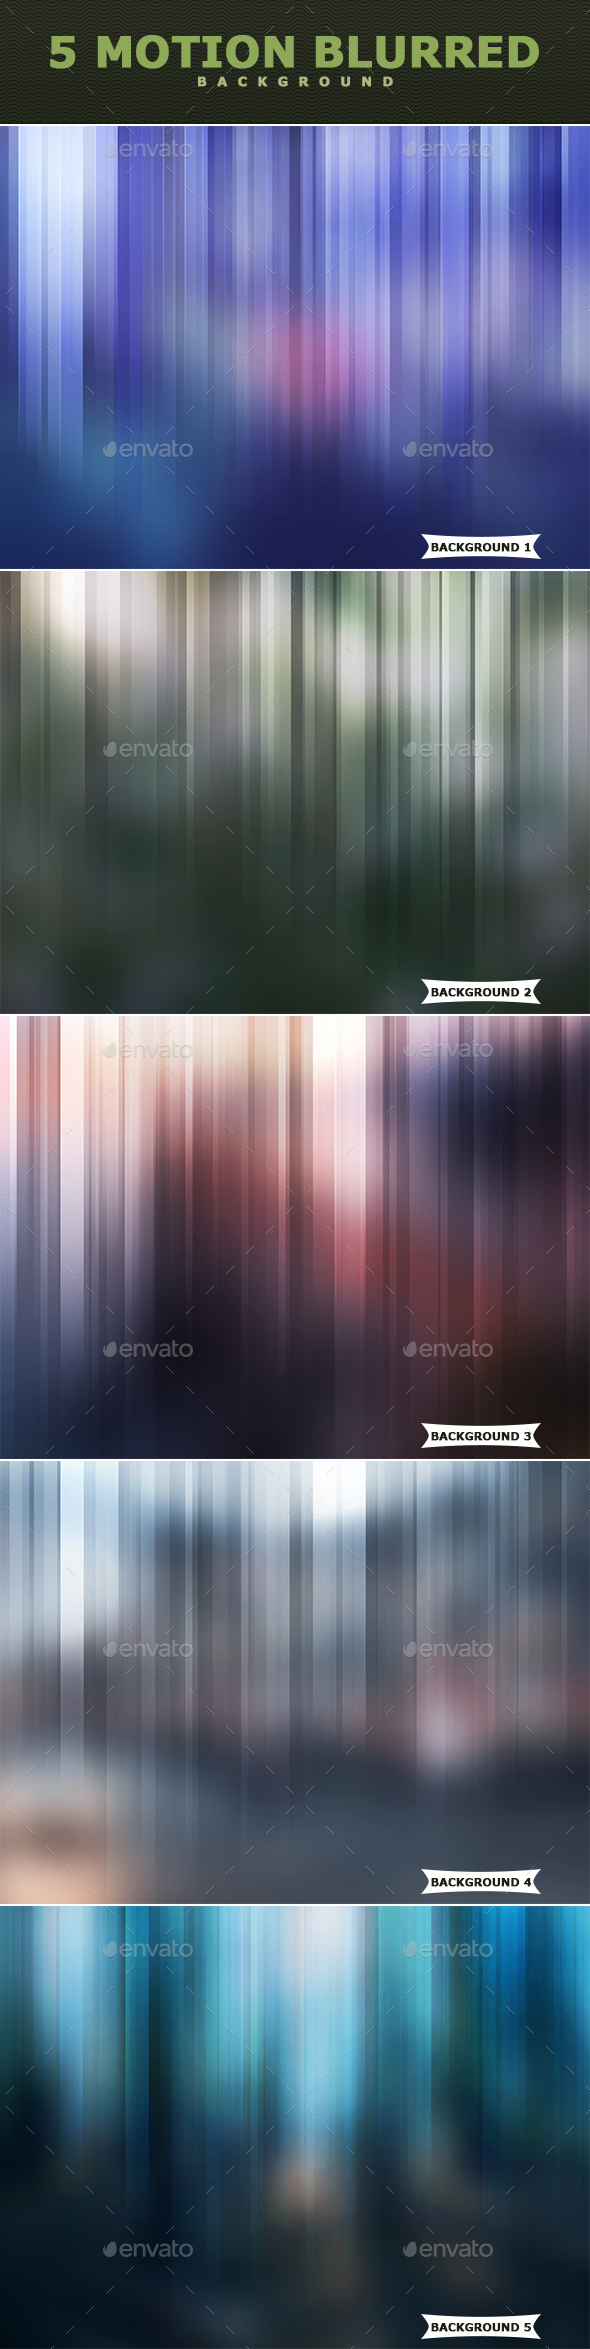 Motion Blurred Backgrounds - Abstract Backgrounds